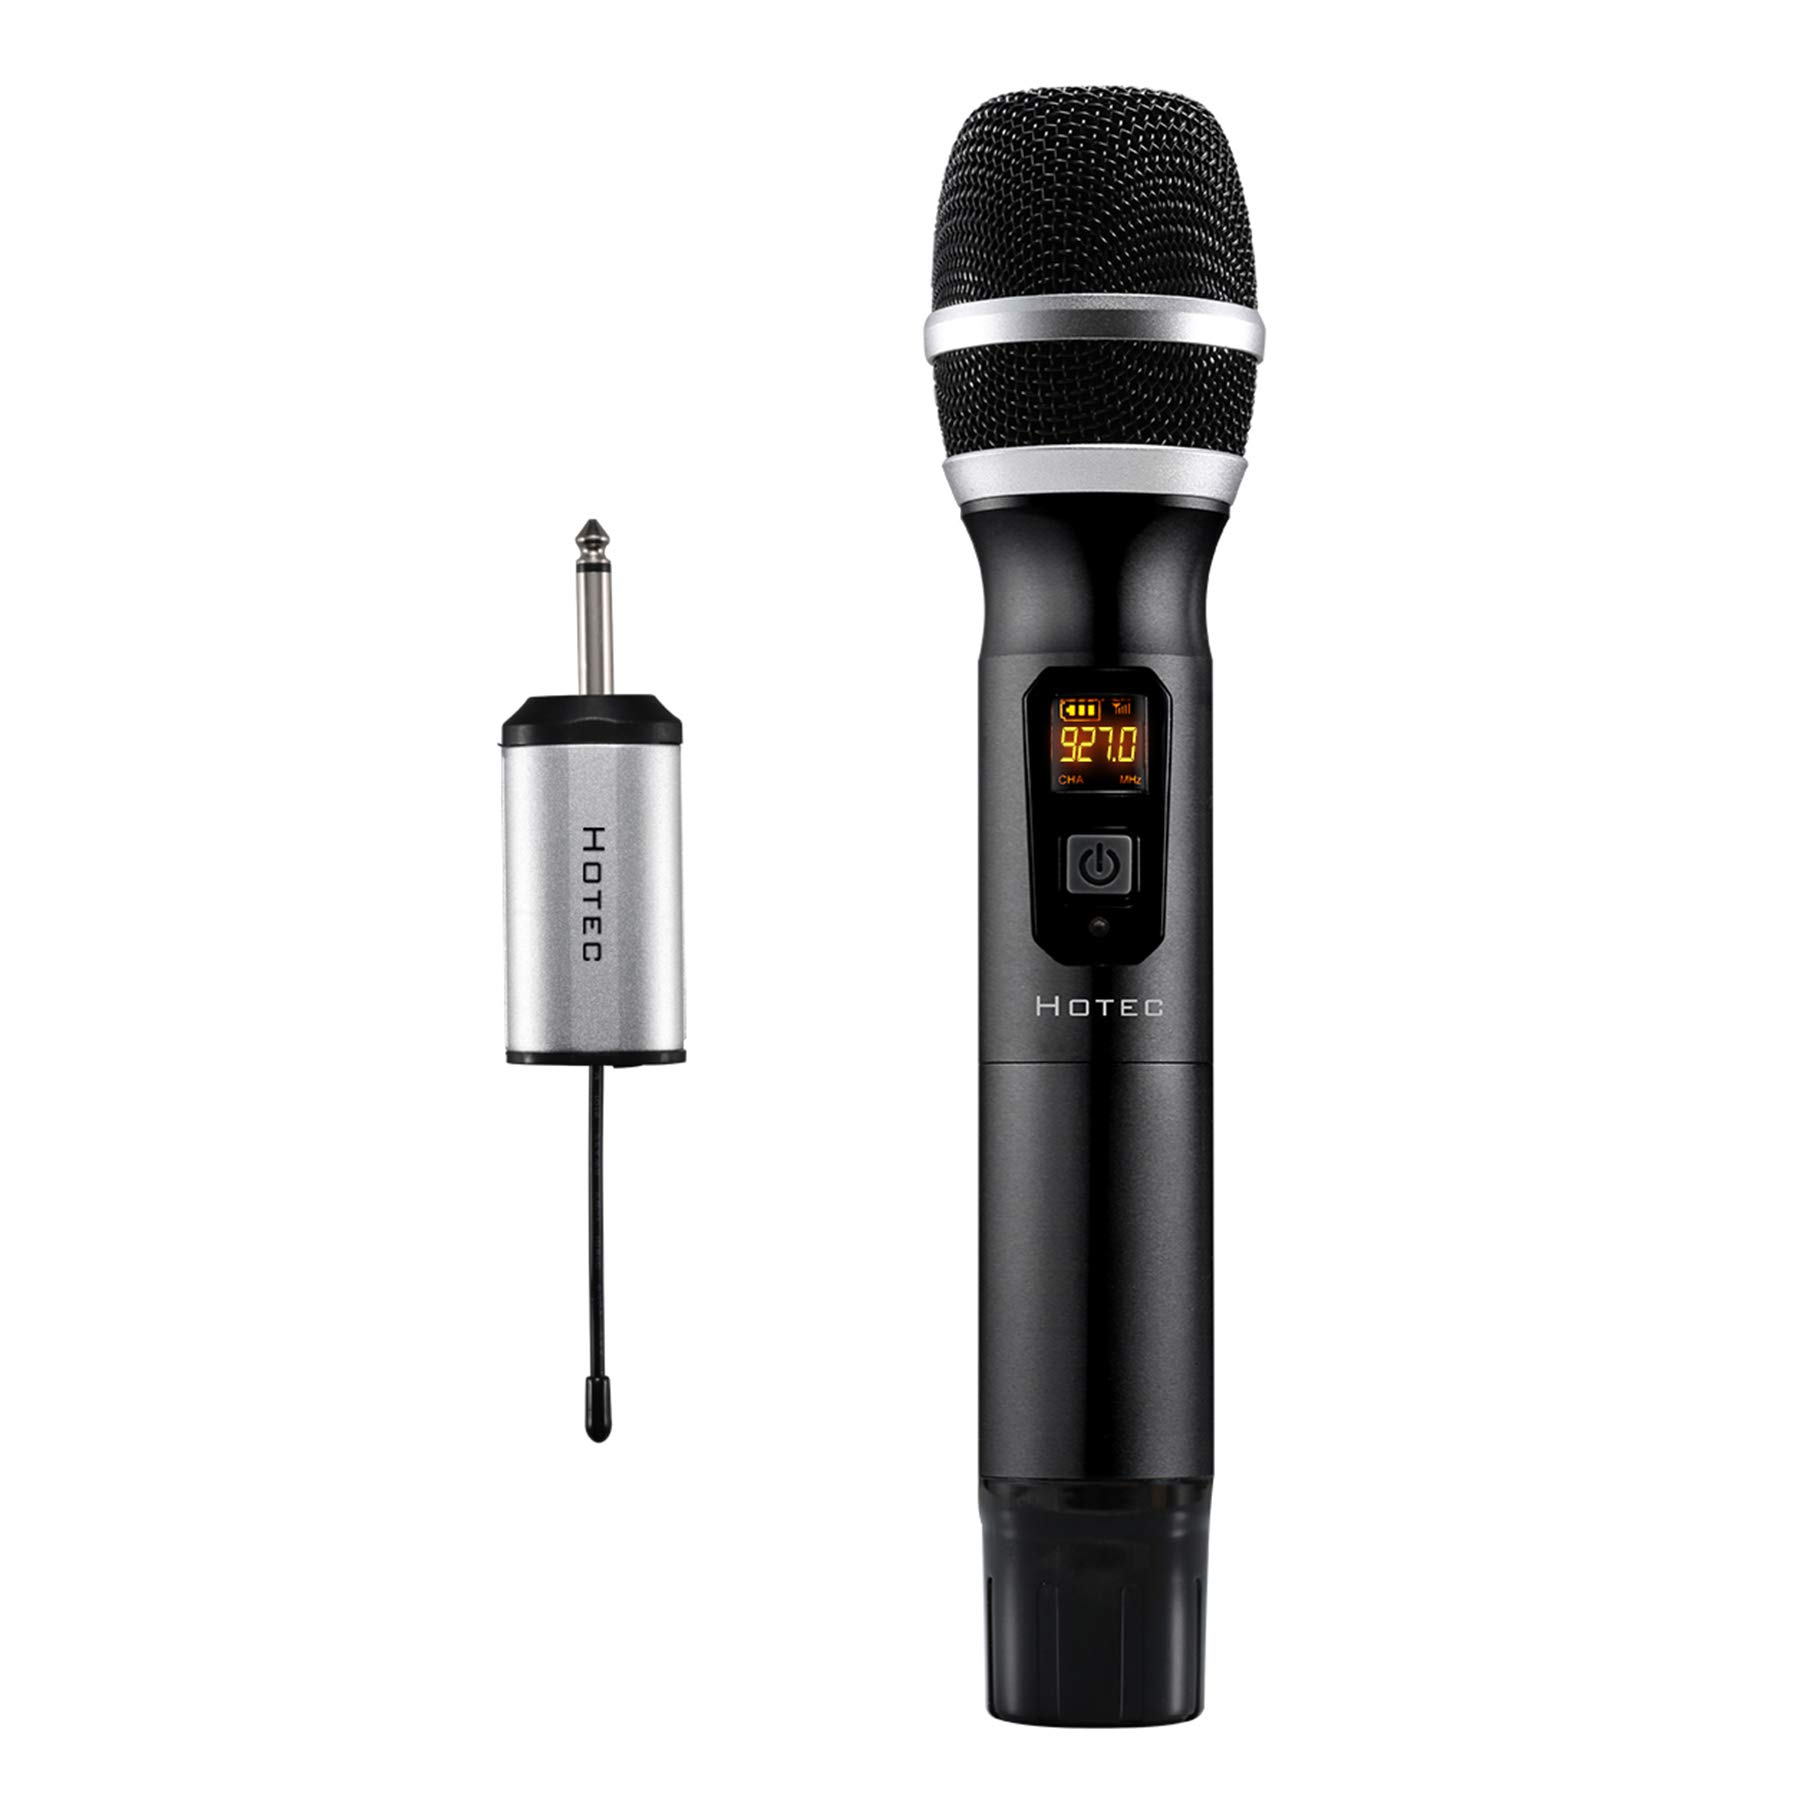 Hotec Wireless Microphones, UHF Handheld Microphone for Church Home Karaoke Party Lecture or Recording (Black U06B)